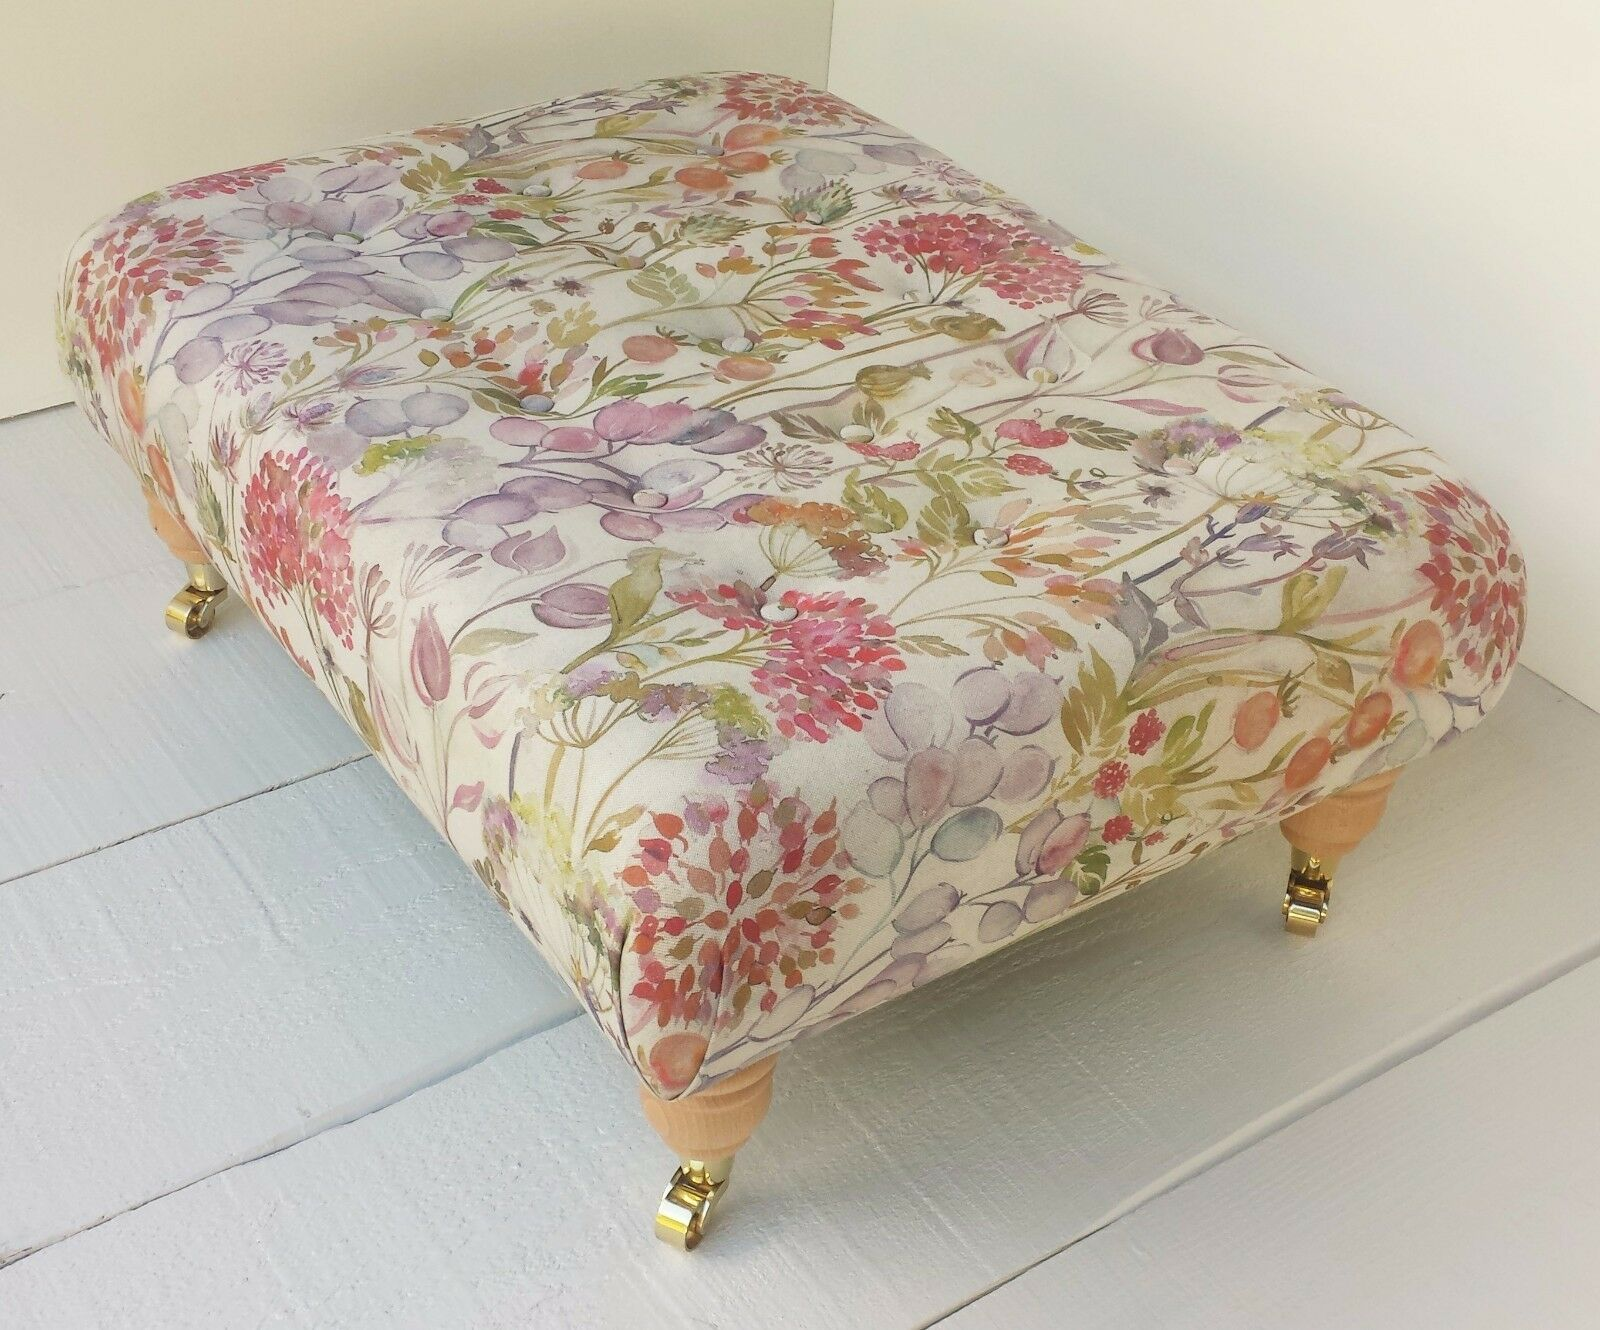 Buttoned Footstool in Voyage Maison Hedgerow Autumn Fabric. Choose Größe & Legs